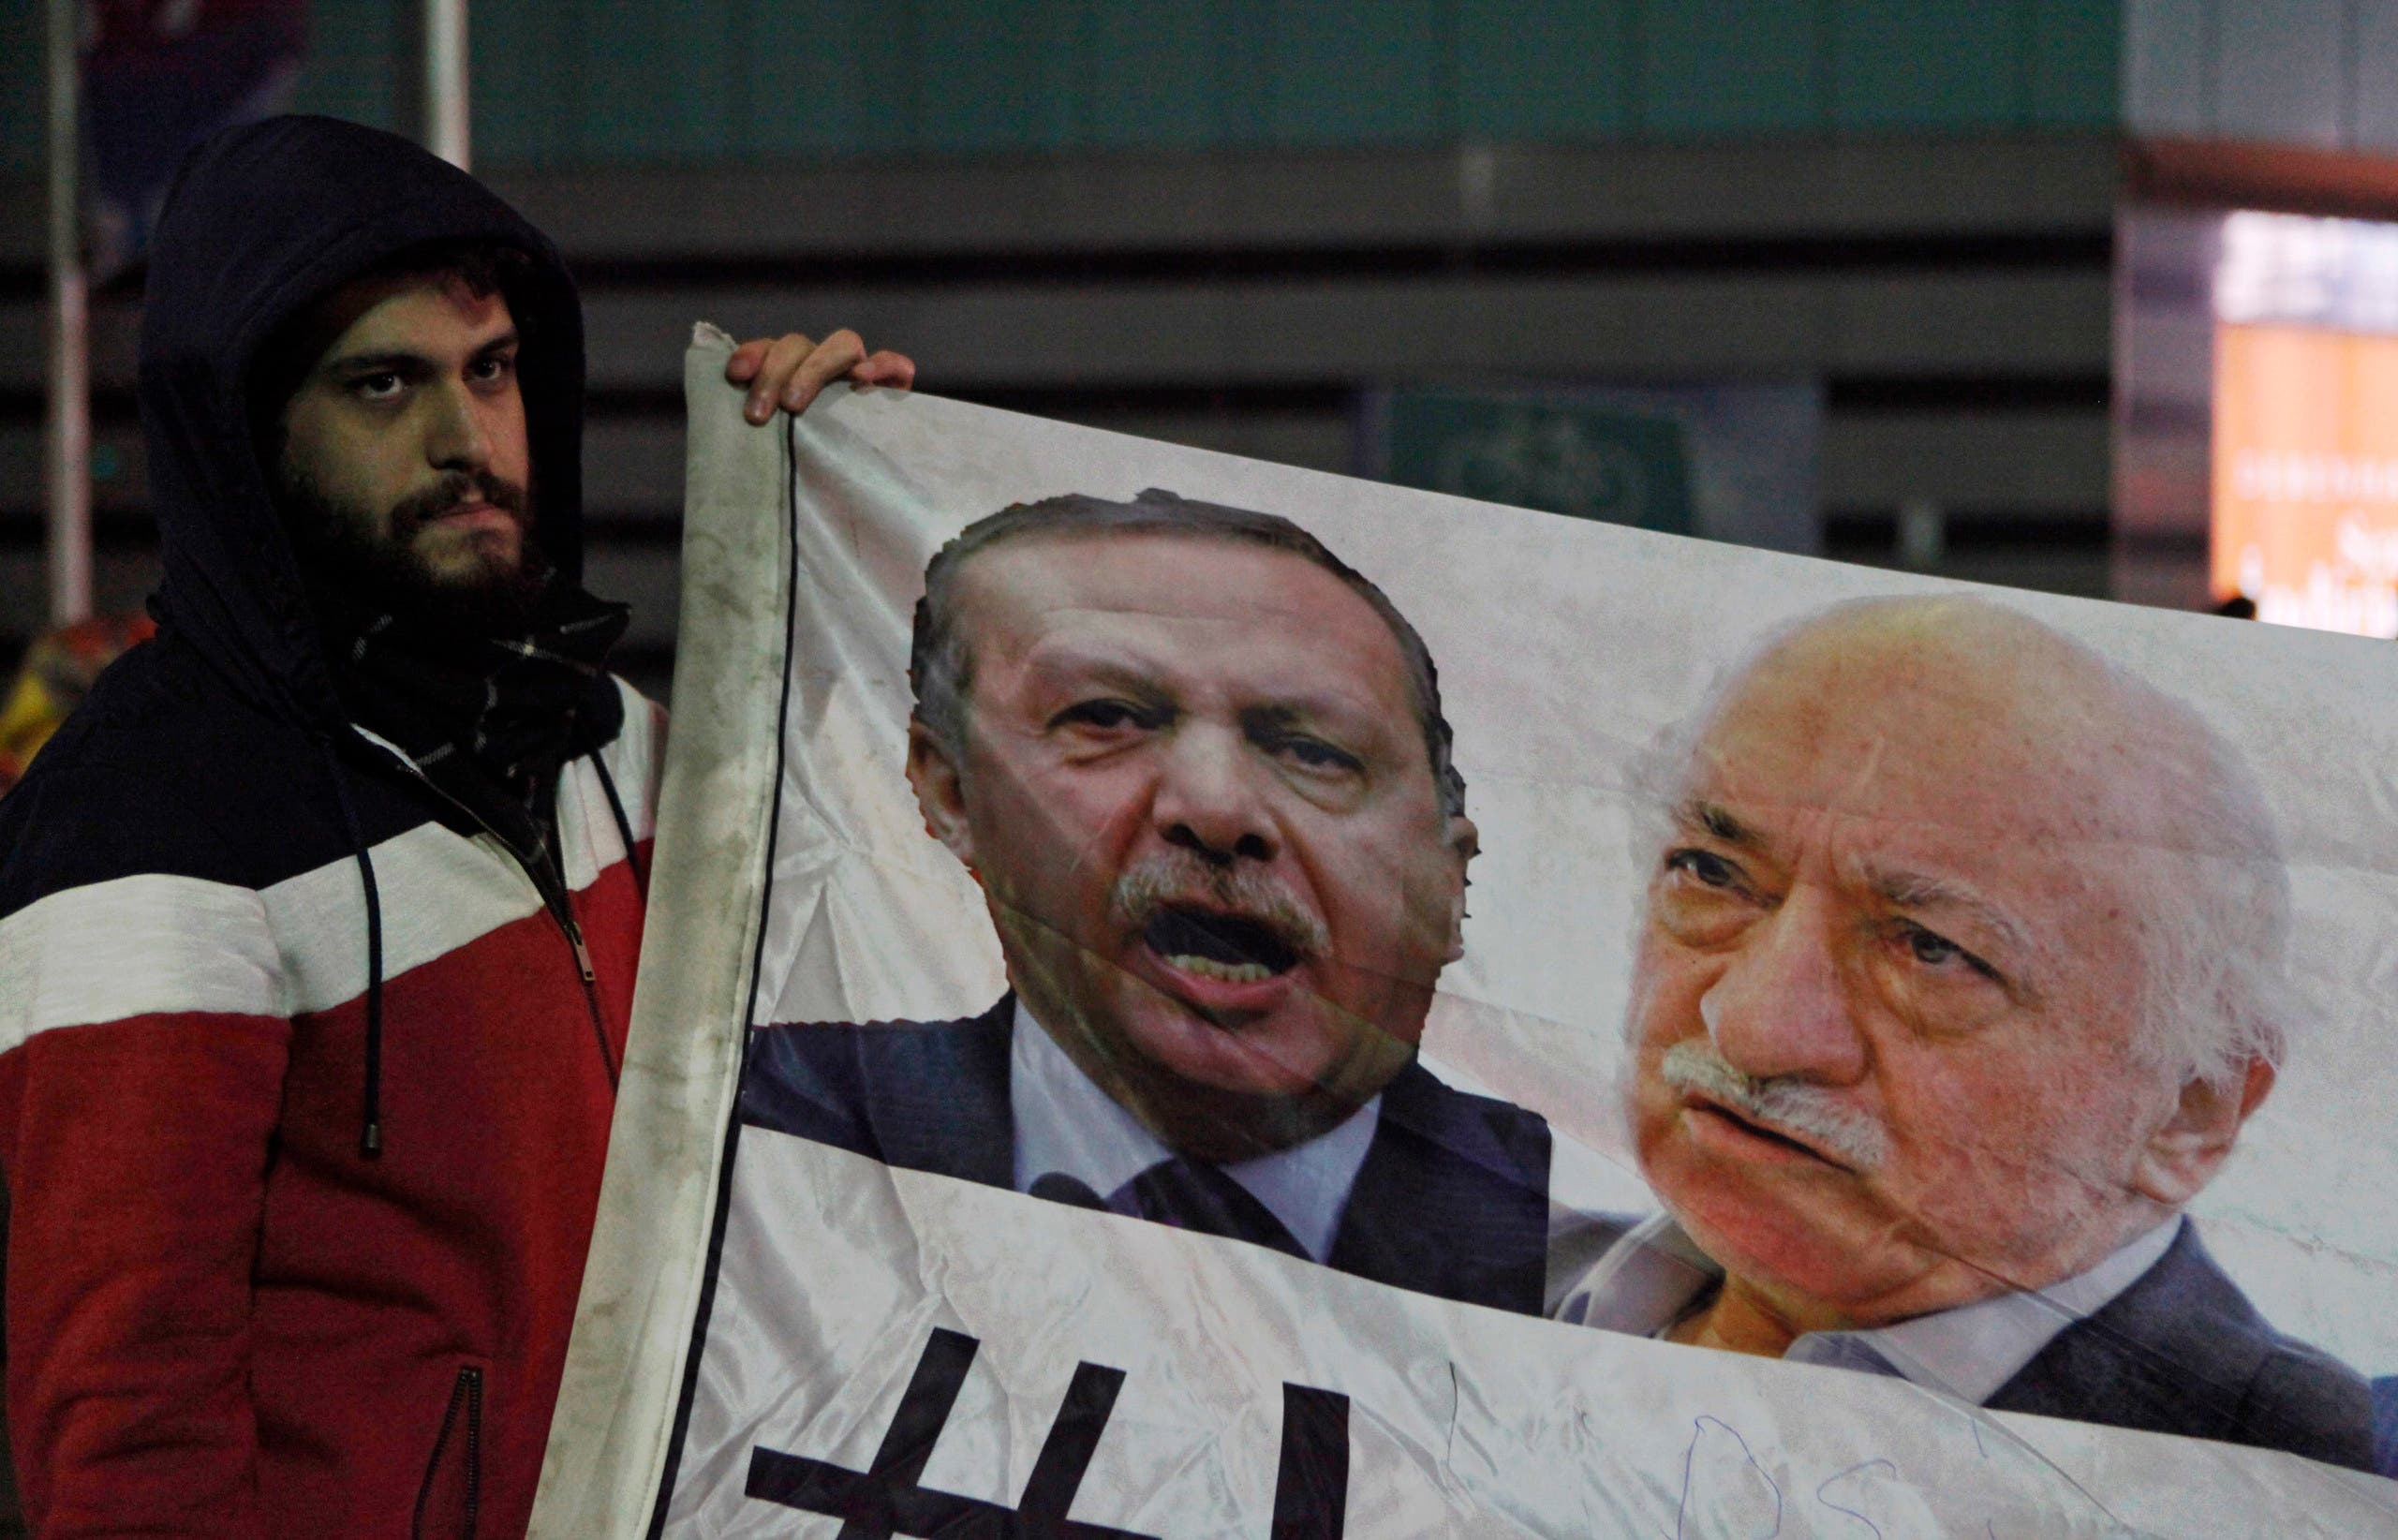 A demonstrator hold pictures of Turkey's Prime Minister Tayyip Erdogan and Turkish cleric Fethullah Gulen (R), in Istanbul December 30, 2013. (Reuters)